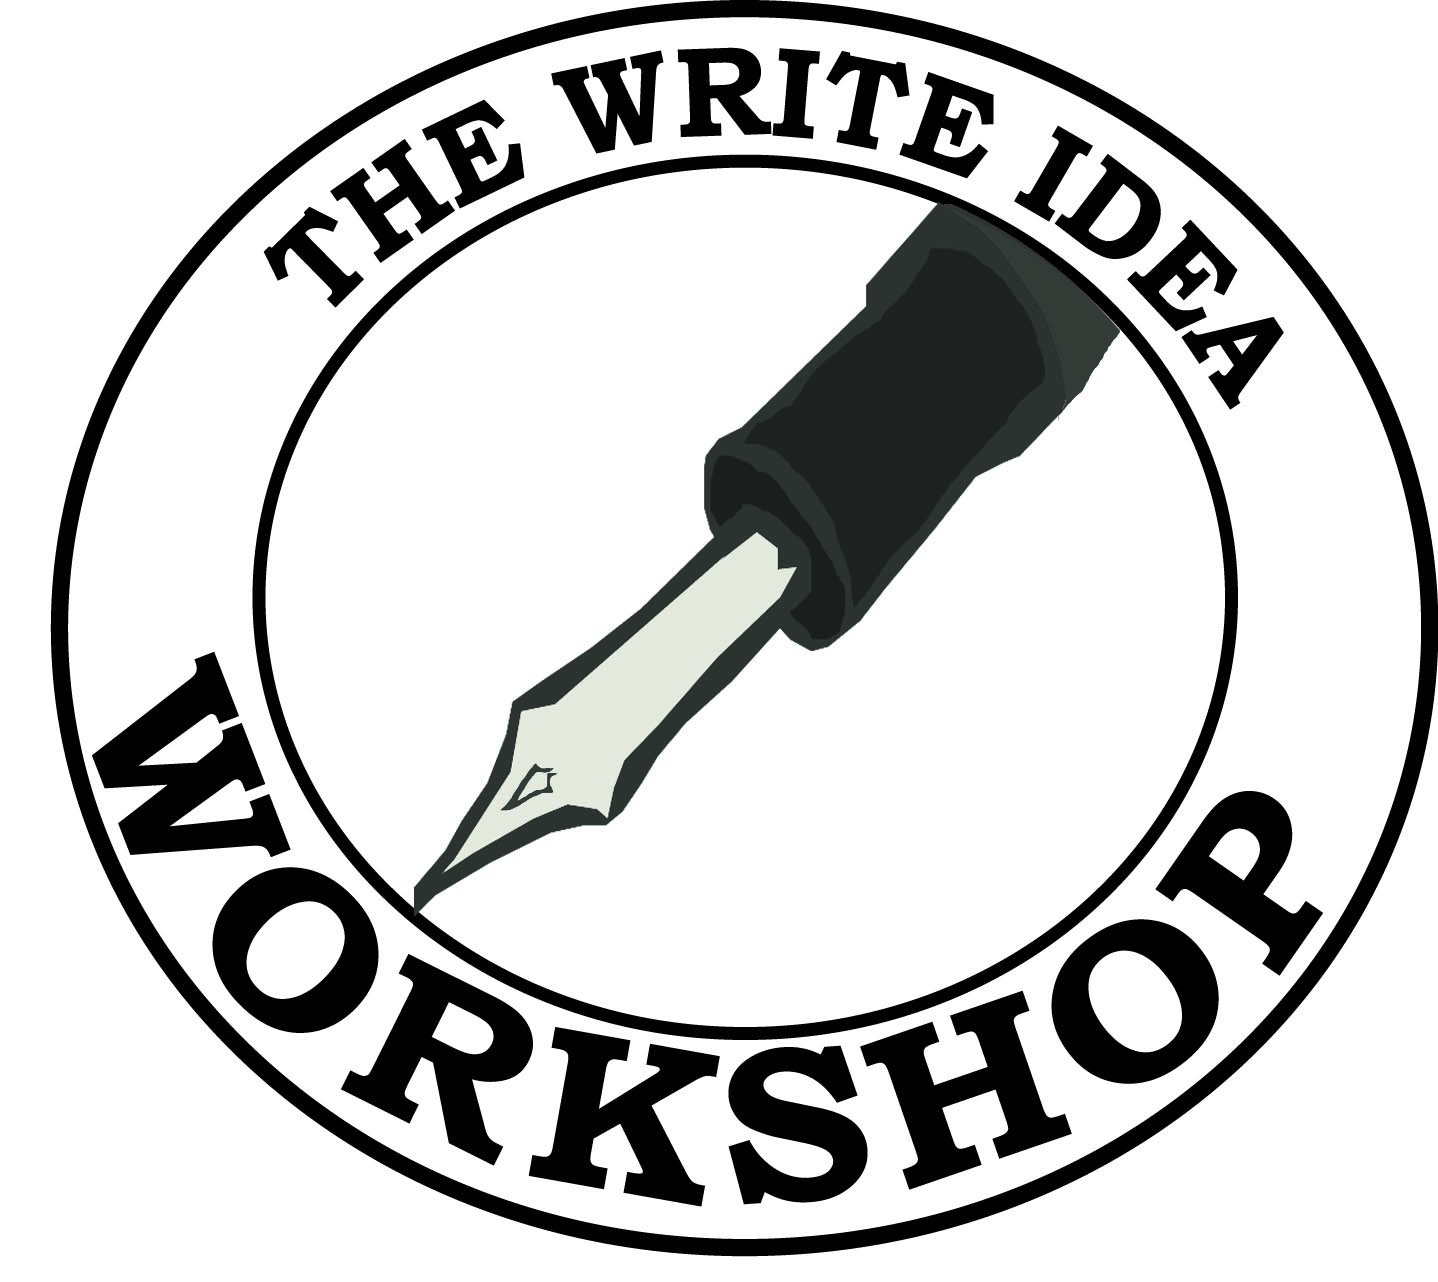 043 - The Write Idea Workshop - Wild Figs and Speculation